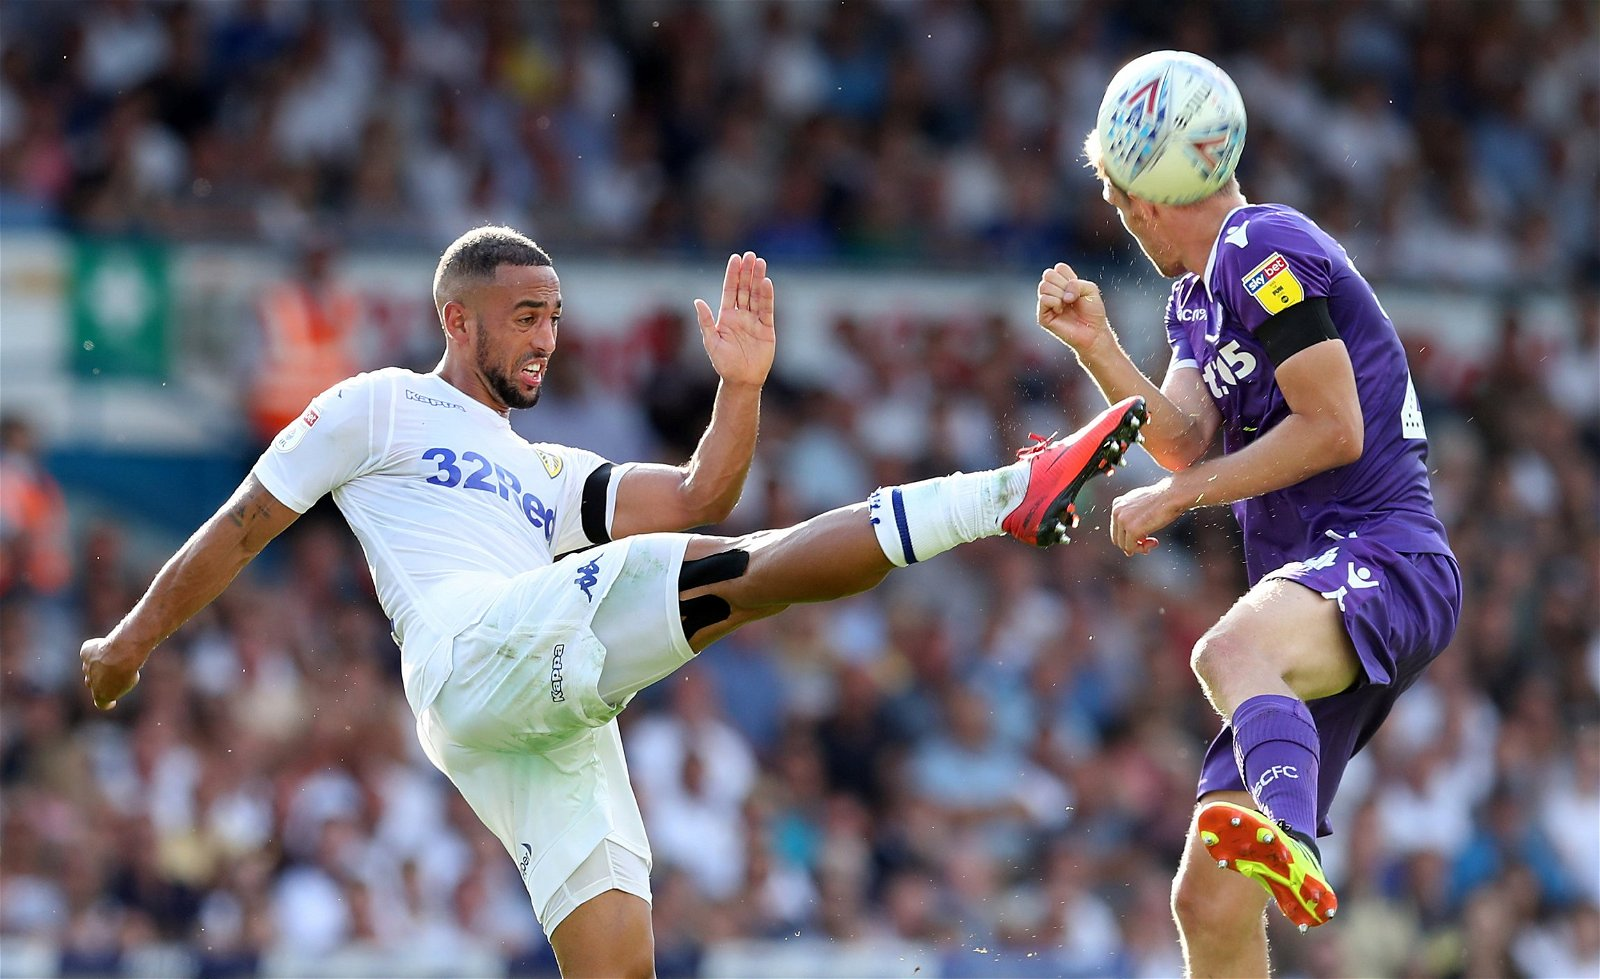 Kemar Roofe for Leeds vs Stoke in the Championship